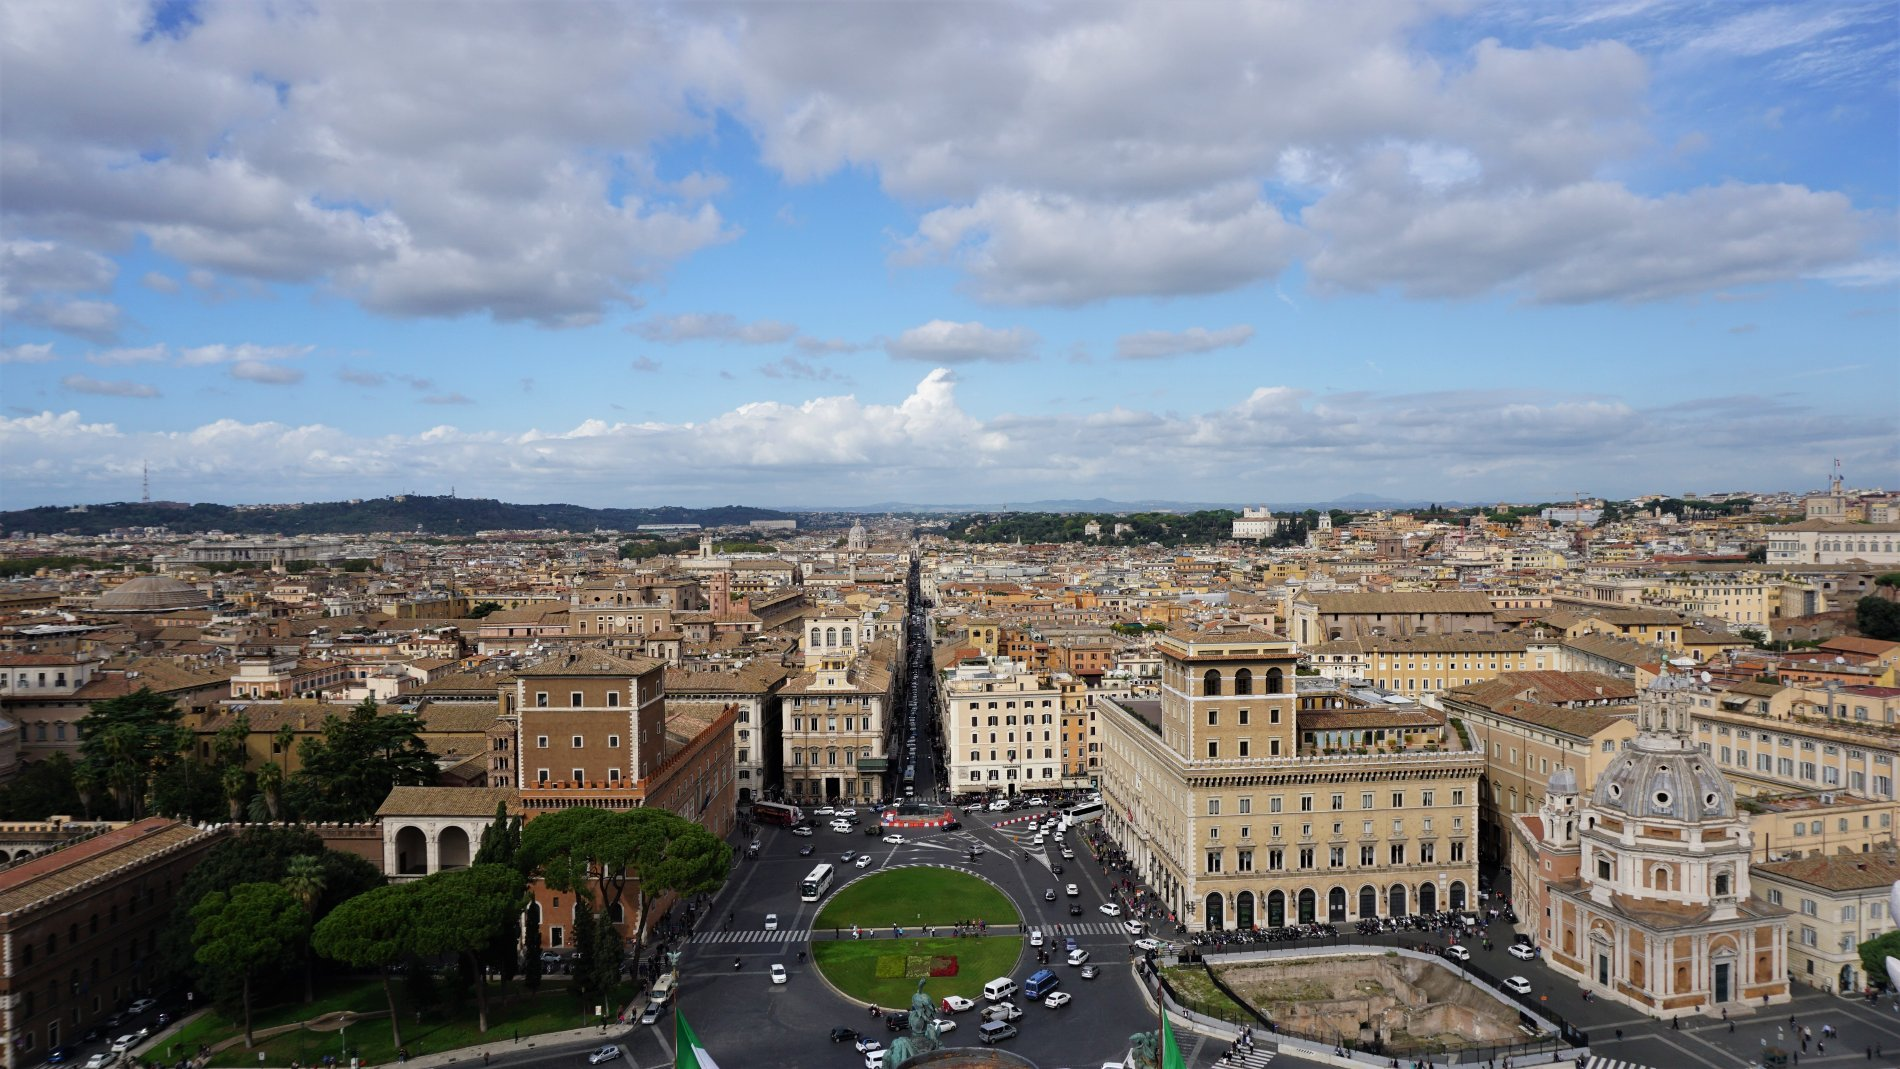 Stunning view of Rome from the top of 'Il Vittoriano' building. Source: Truevoyagers